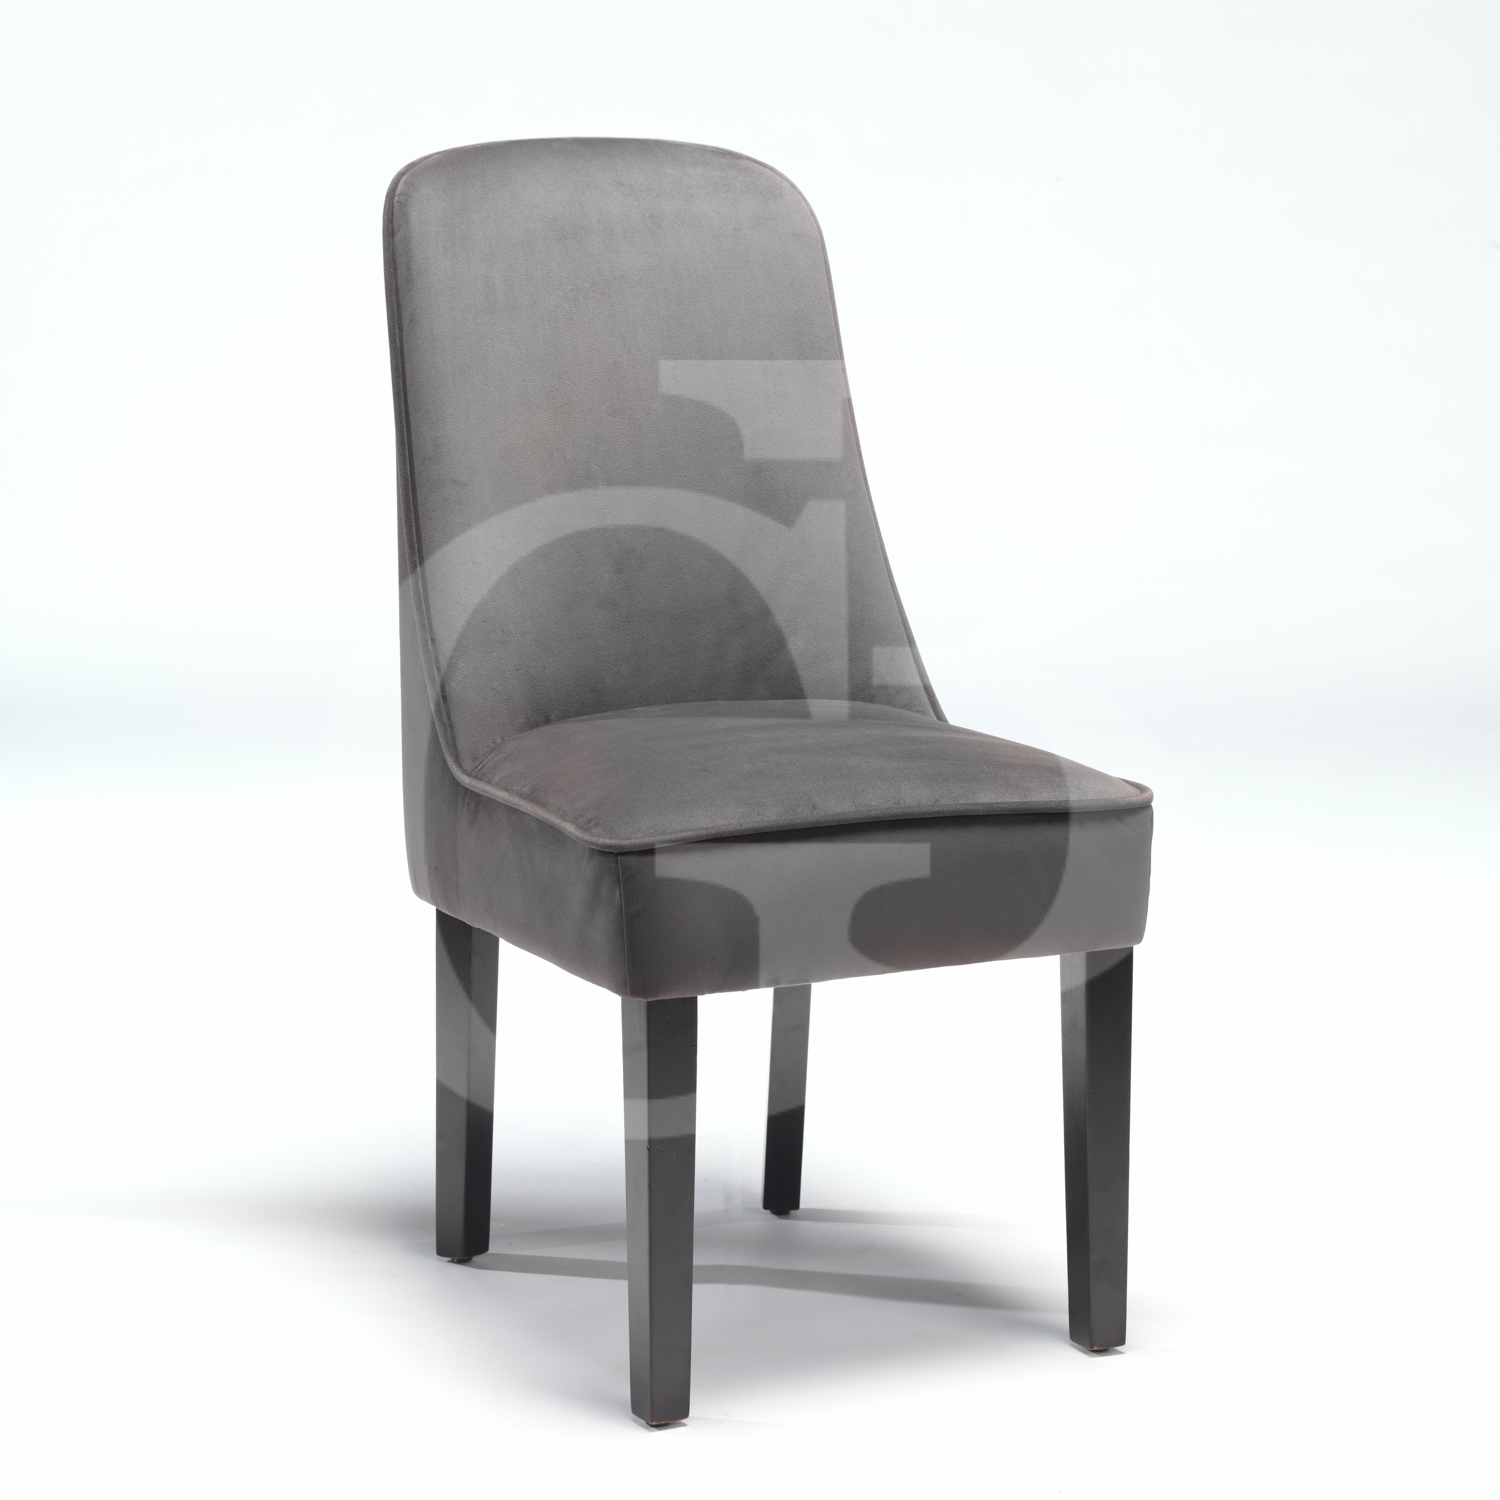 New Upholstered Dining Chair In Dark Grey Velour Fabric  : productimage1151013161725 from www.ebay.co.uk size 1500 x 1500 jpeg 420kB